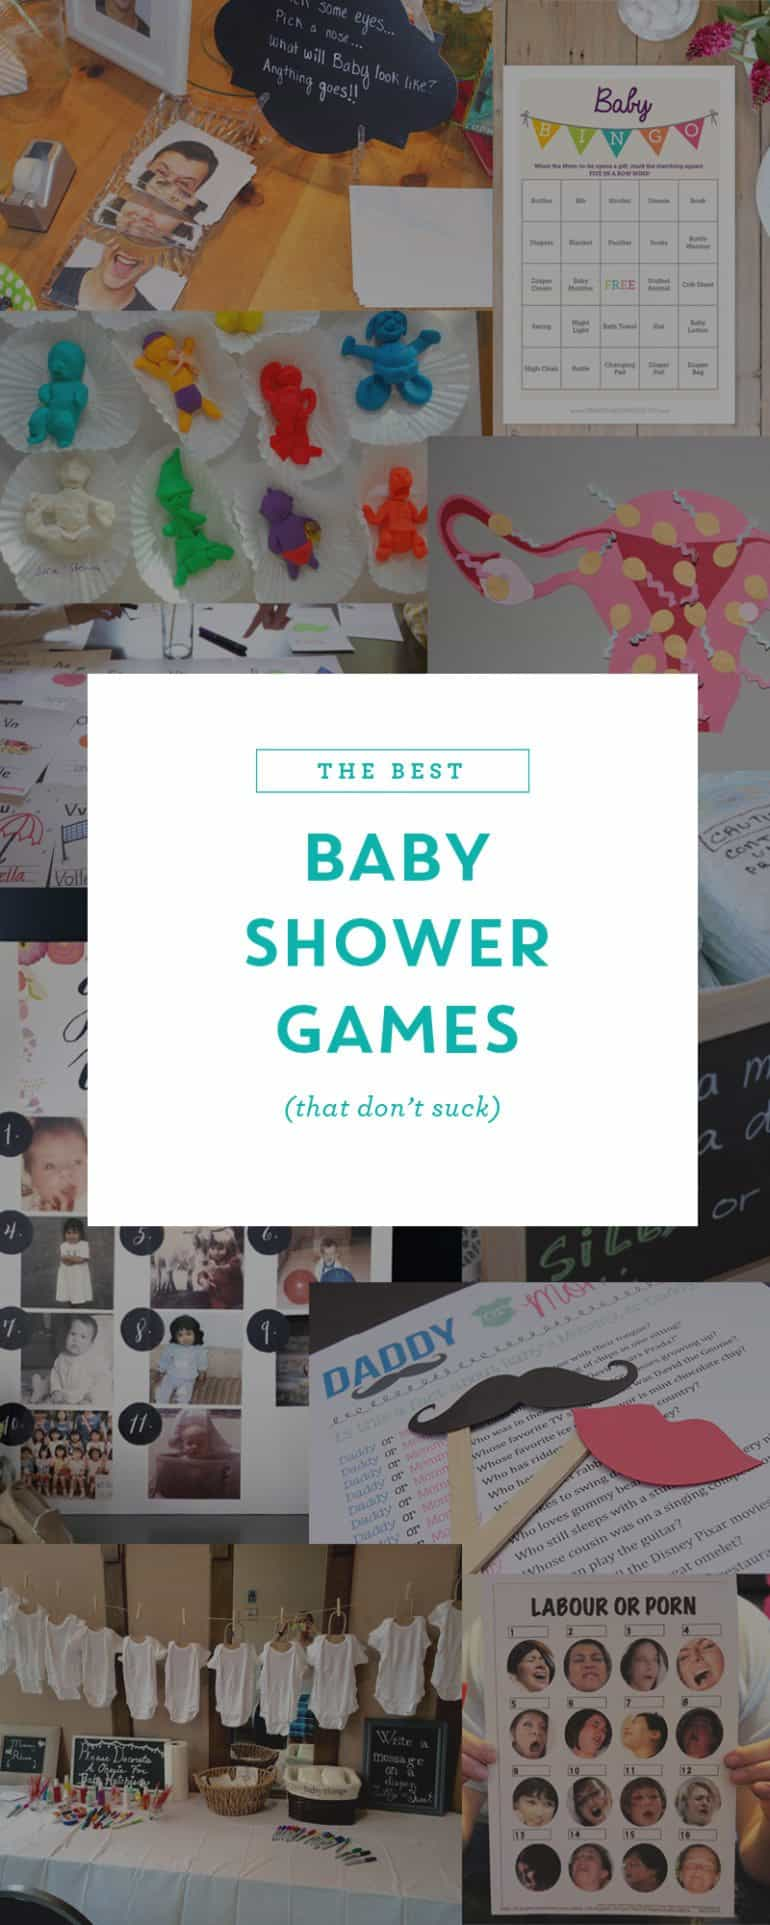 Here are some unique and hilarious baby shower games that are fun for everyone.